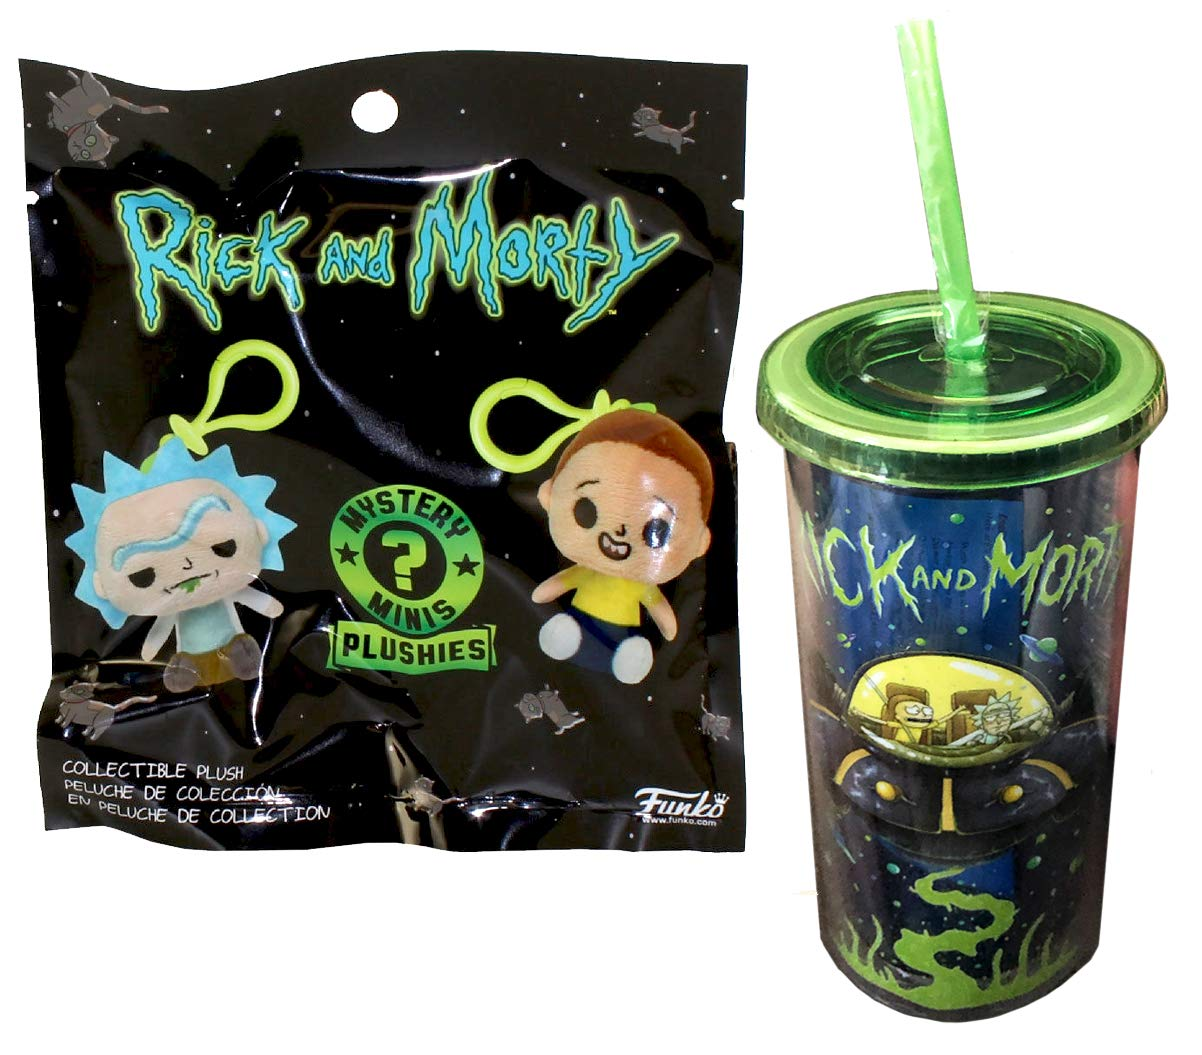 Tumbler and Straw 2 Items R/&Mpop Rick /& Morty on Ship Drinking Cup Funko Cosmic Cup Minis Figure Rick /& Morty Character Pack Plushies Series minis Hanger Hanger Bundled with